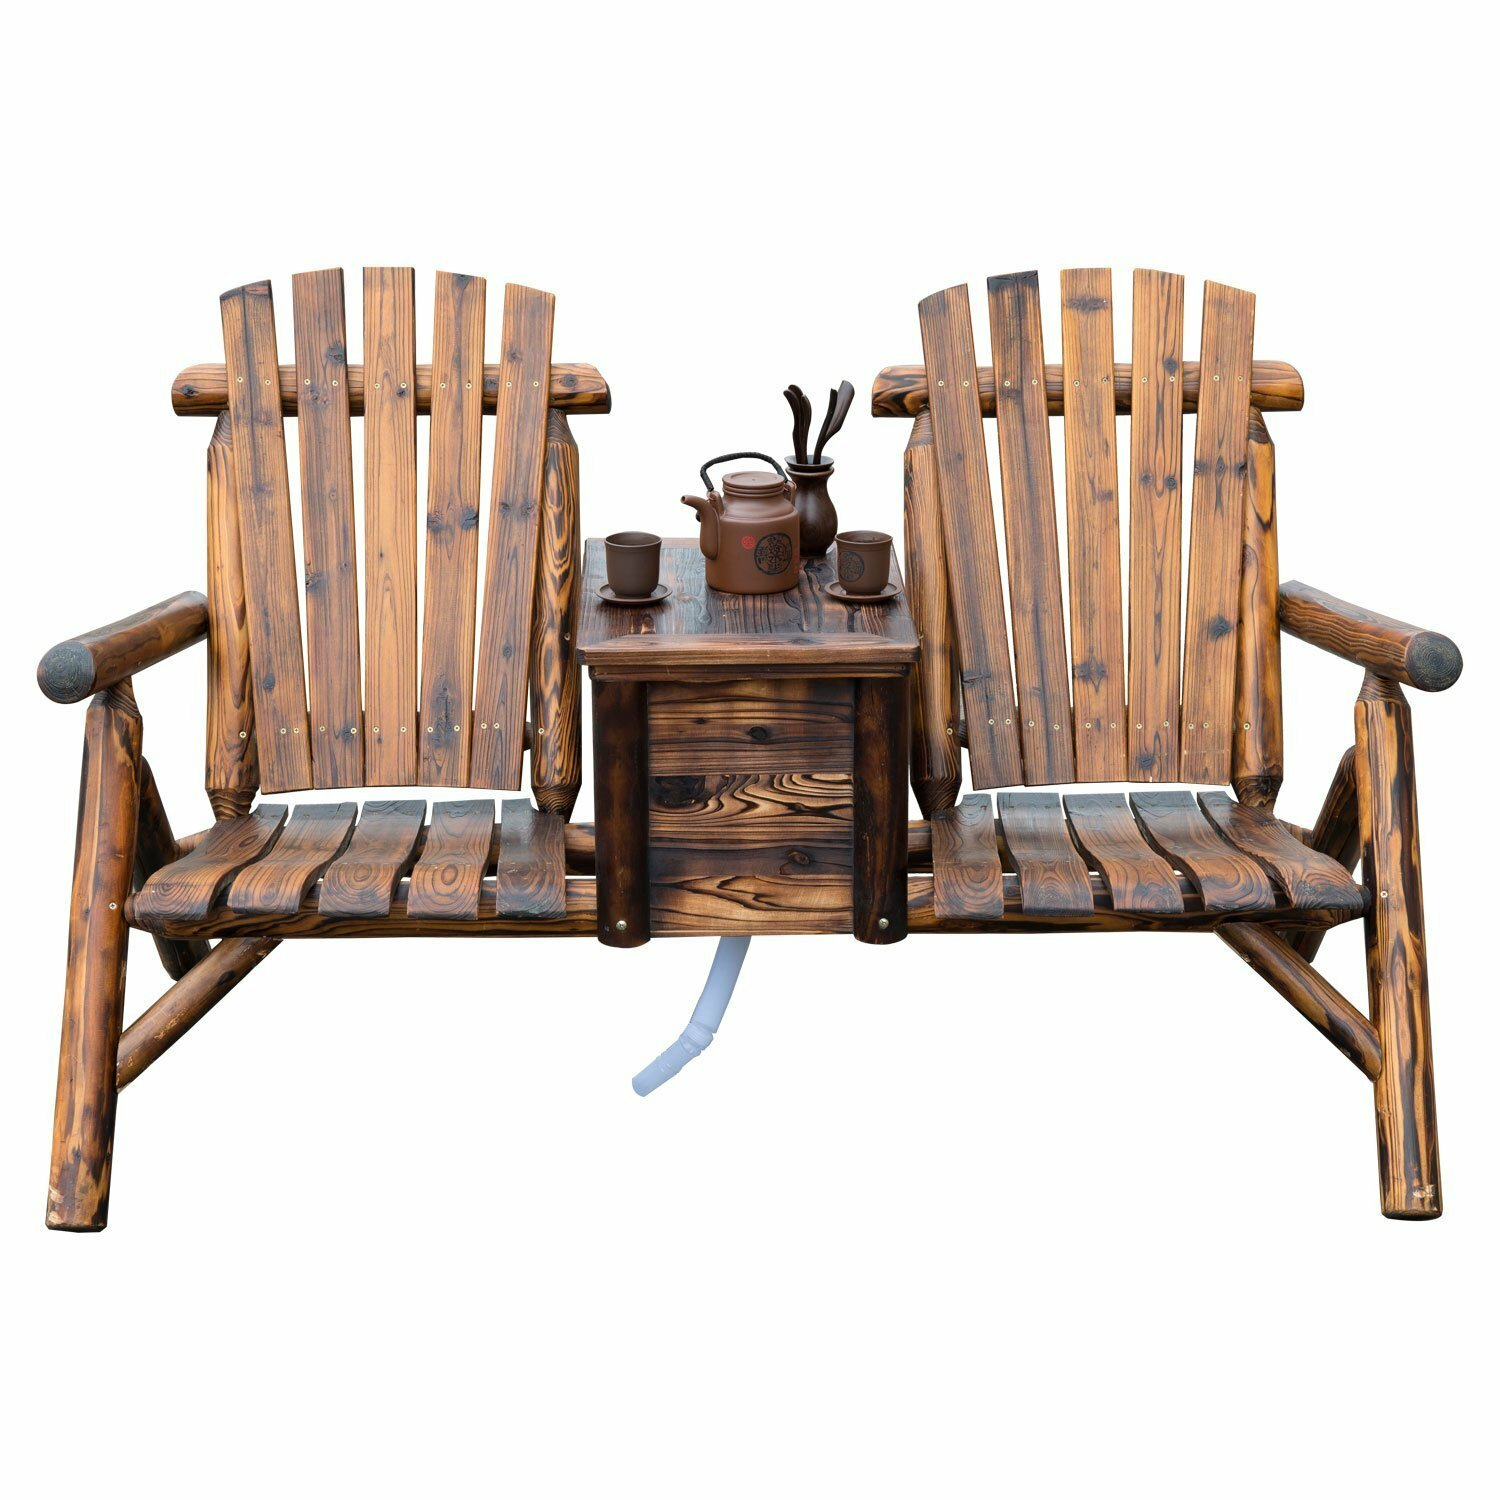 Millwood Pines Gwen Solid Wood Double Adirondack Chair With Table | Wayfair